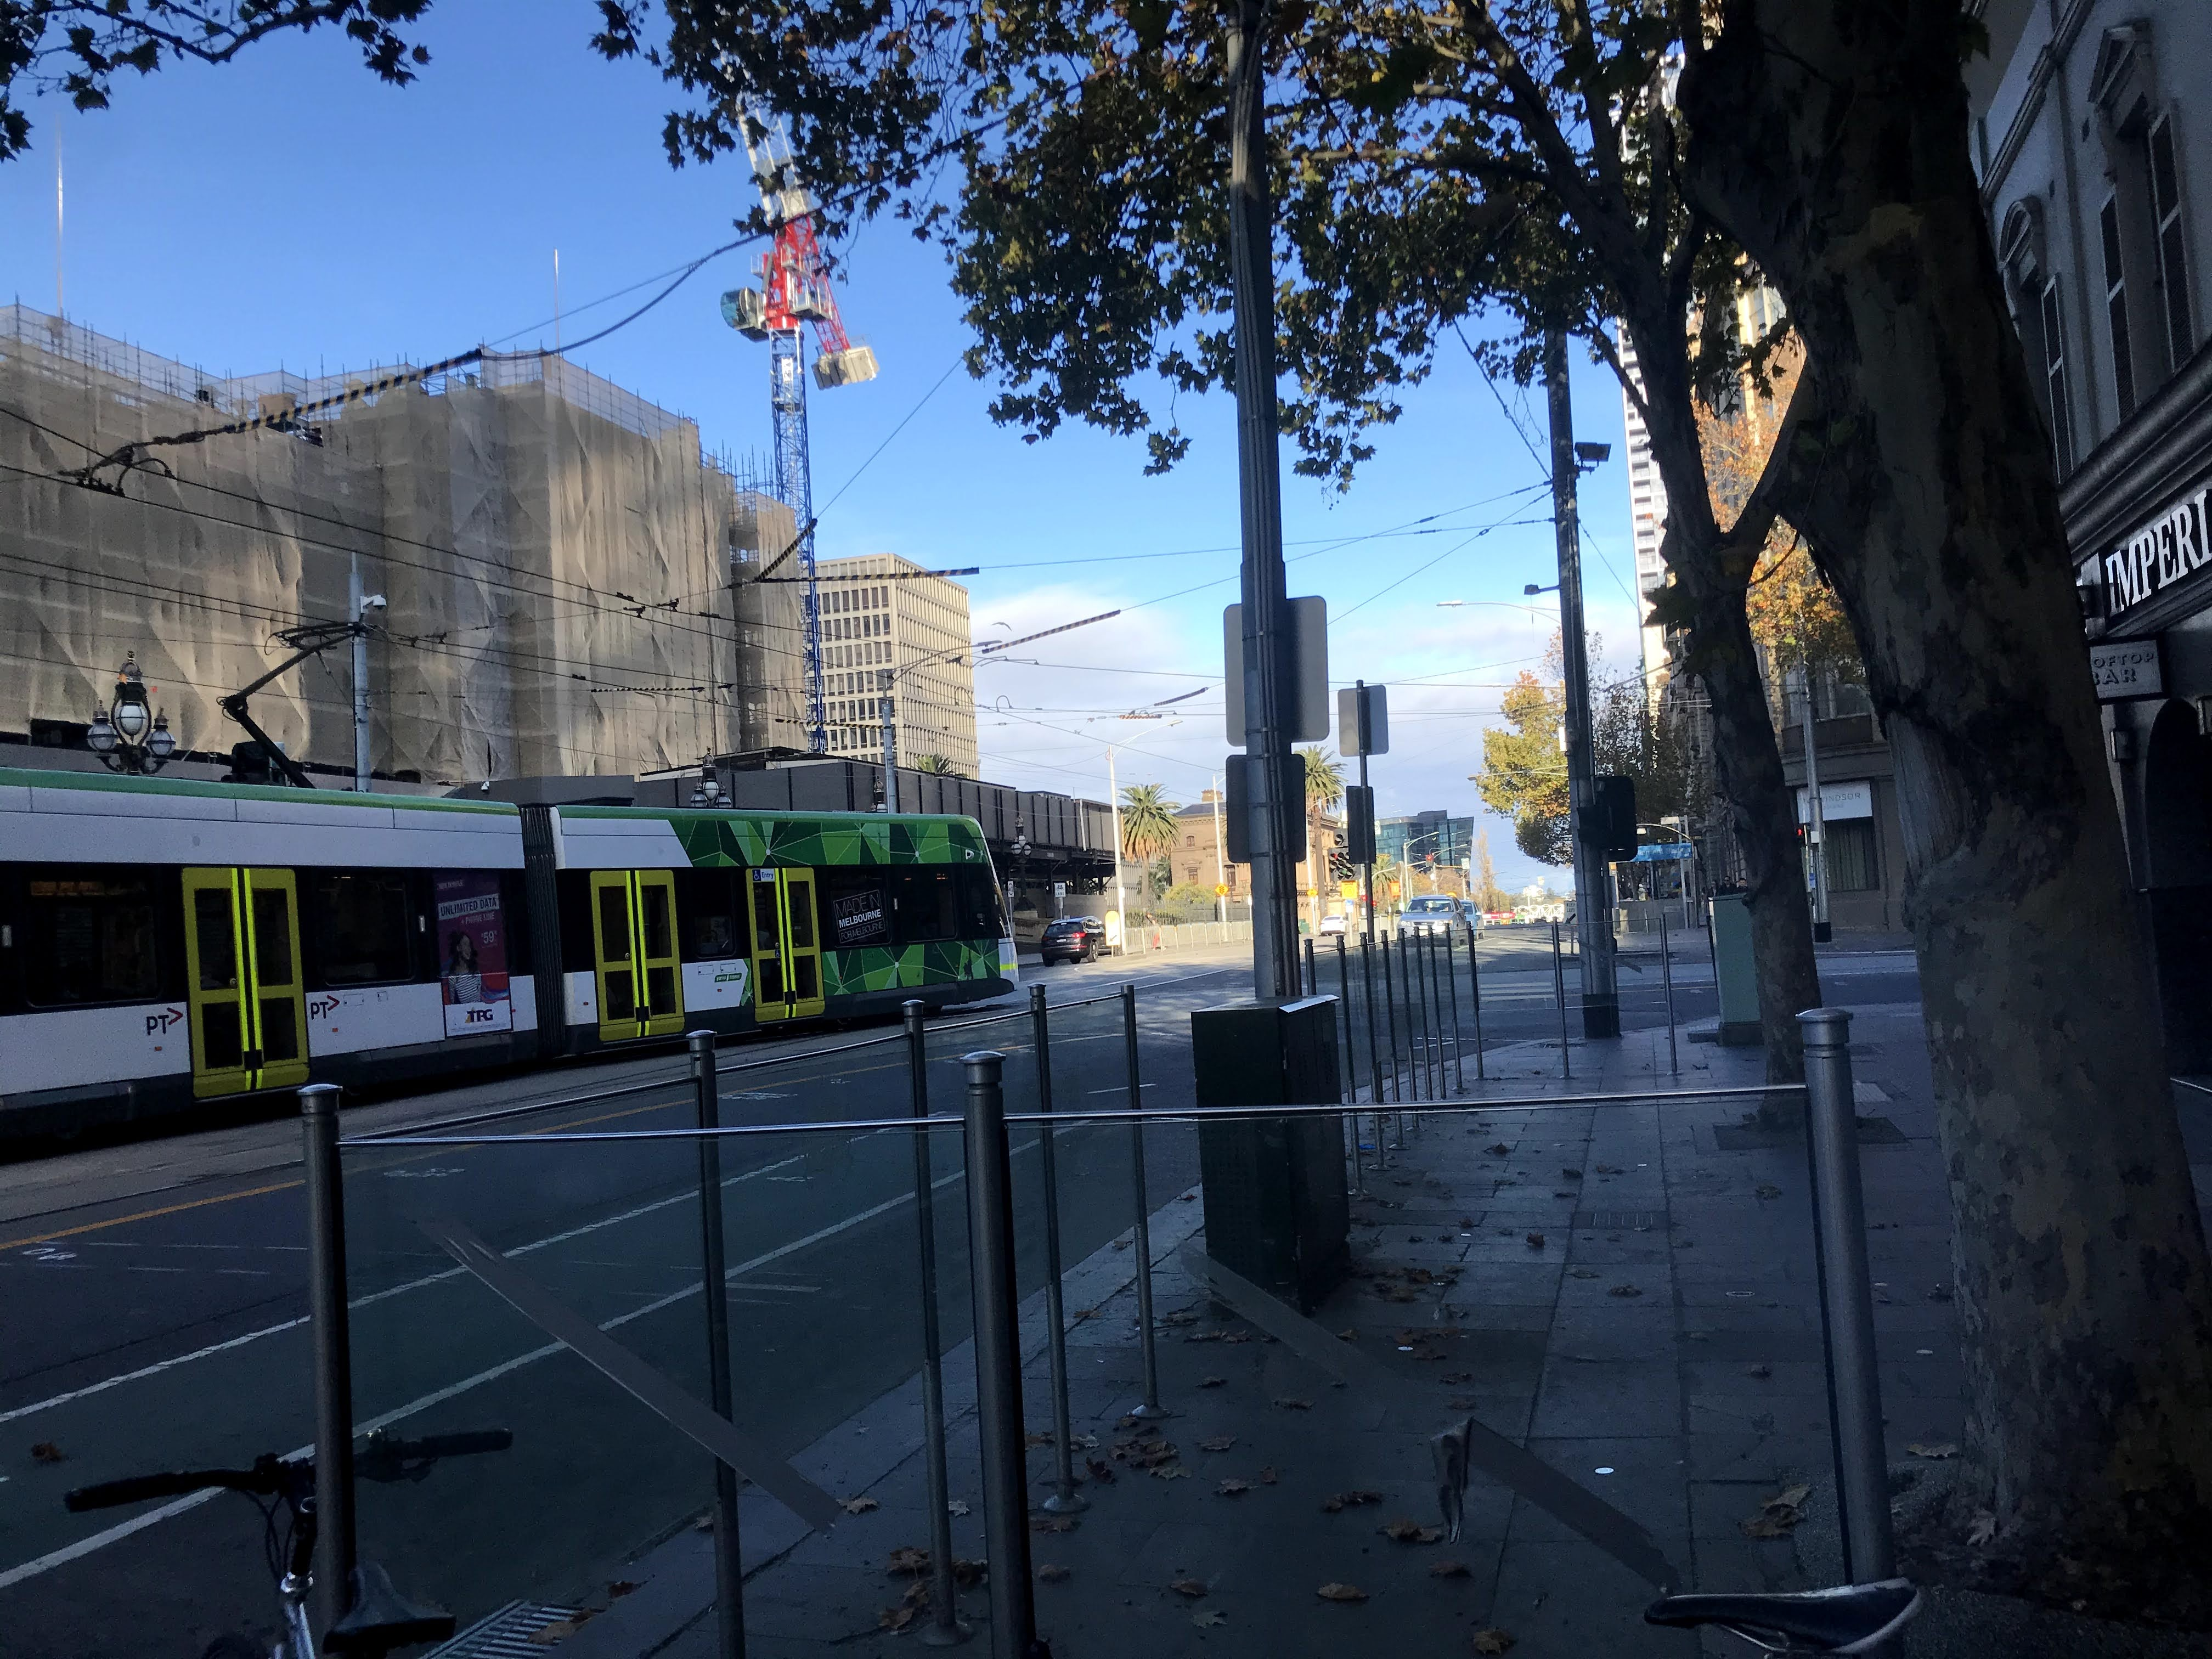 Melbourne city with passing tram